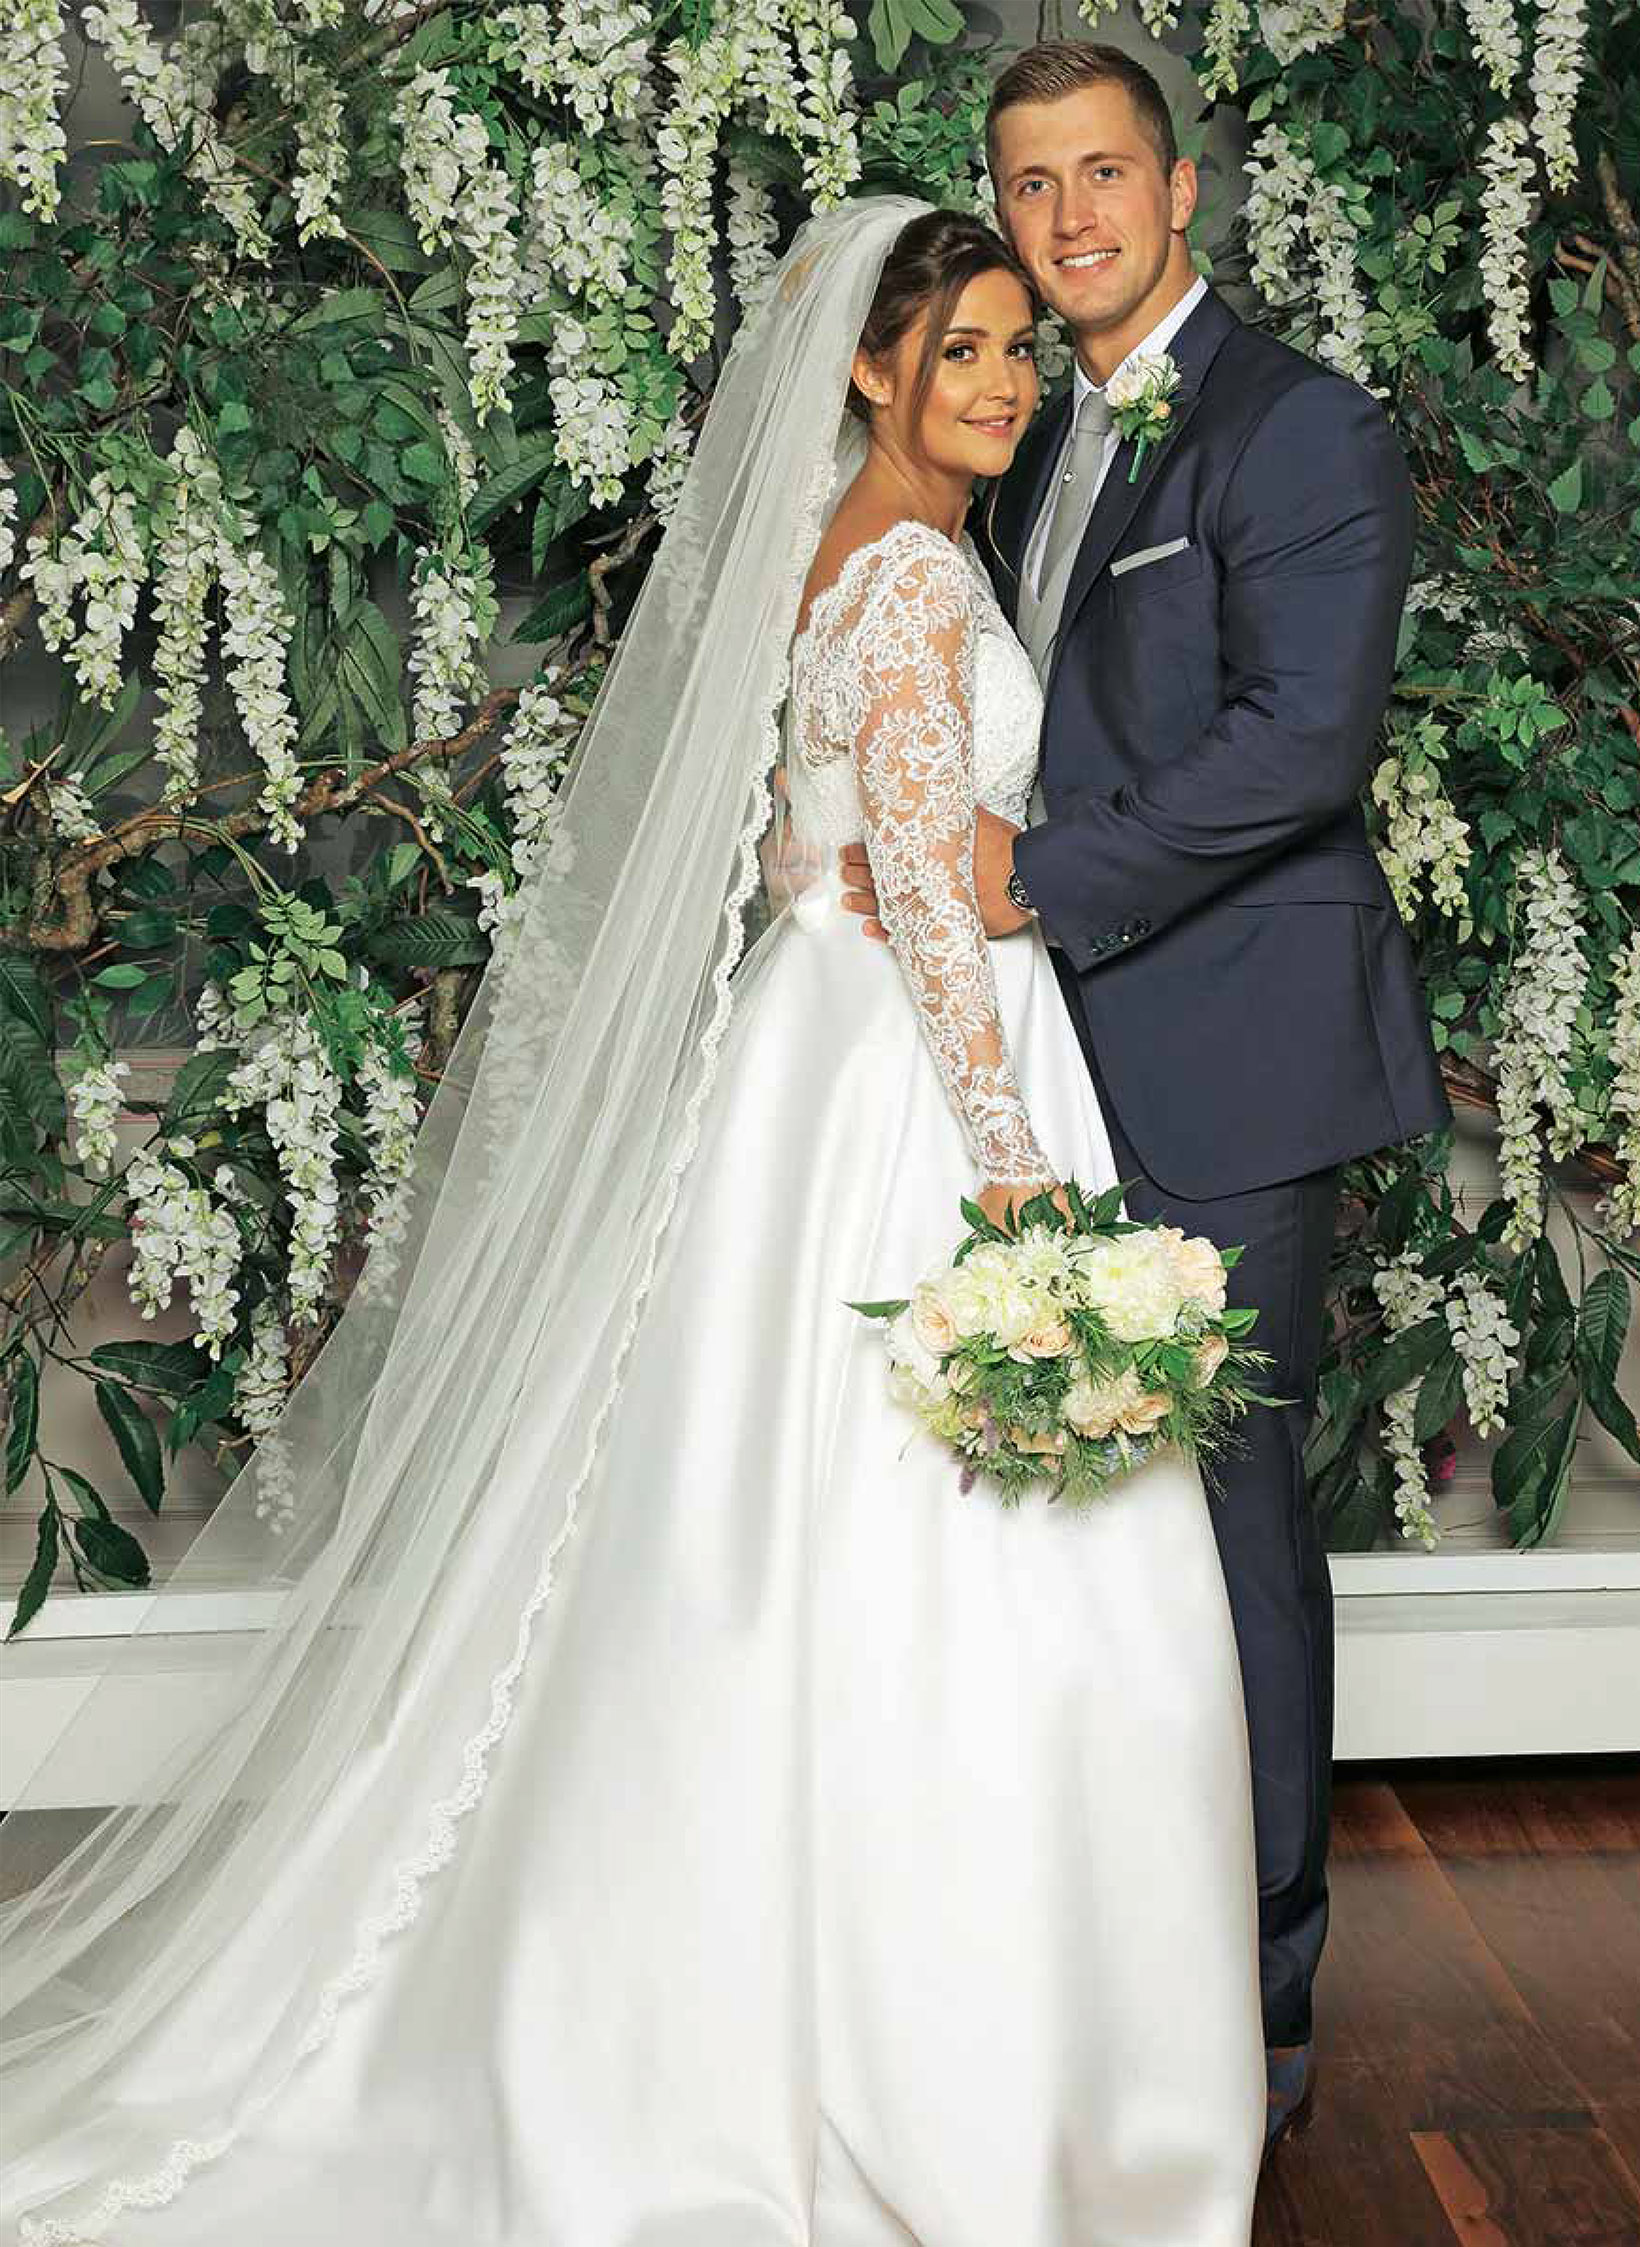 tv-couples-married-in-real-life-jaqueline-joss-dan-osborne-wedding-dresses-by-designer-suzanneneville10